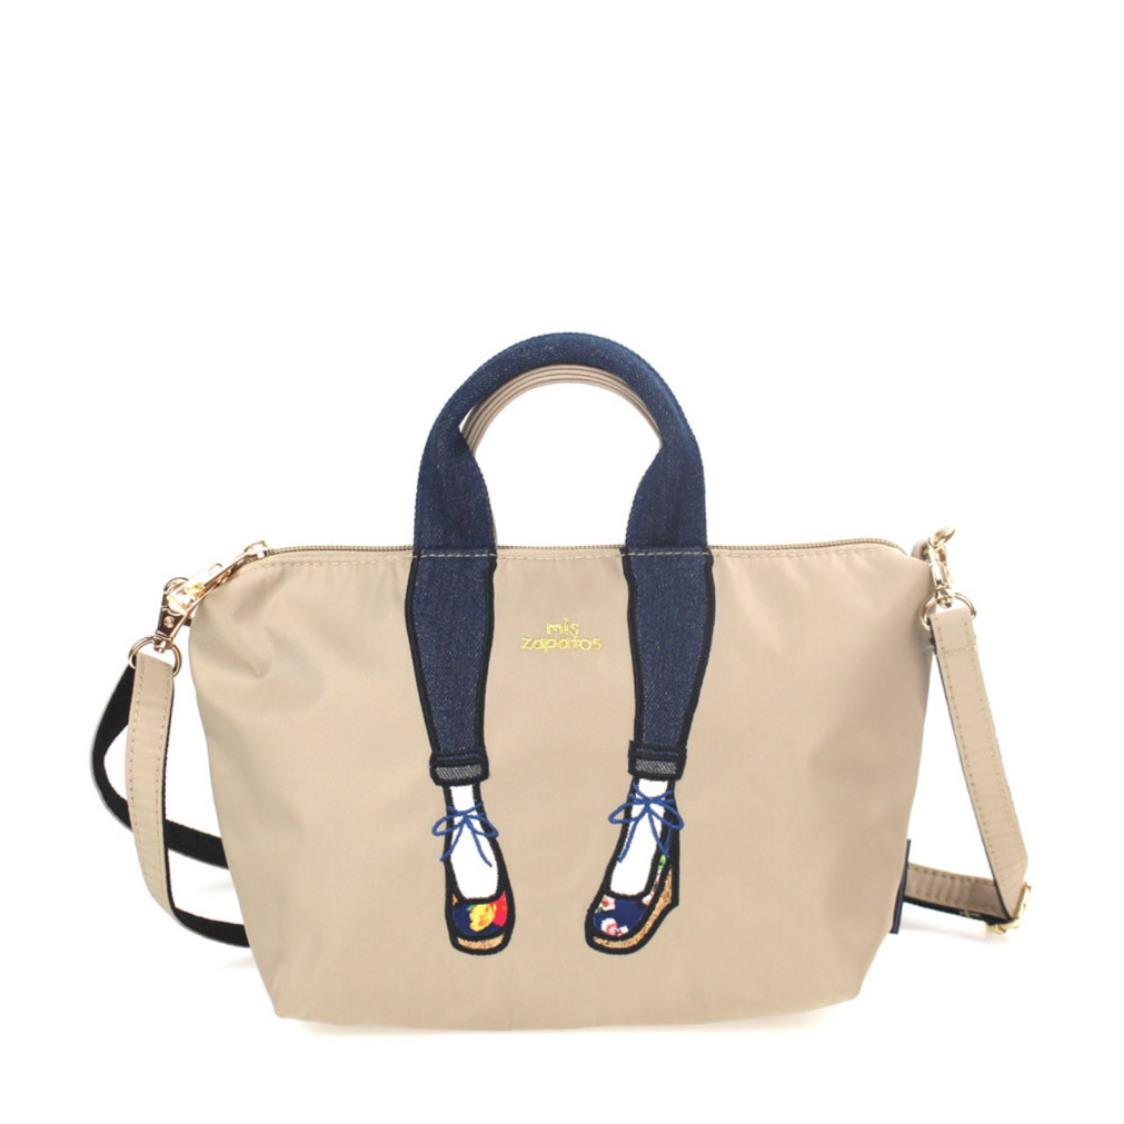 2-Way Use Jeans with Wedges Slingbag Beige